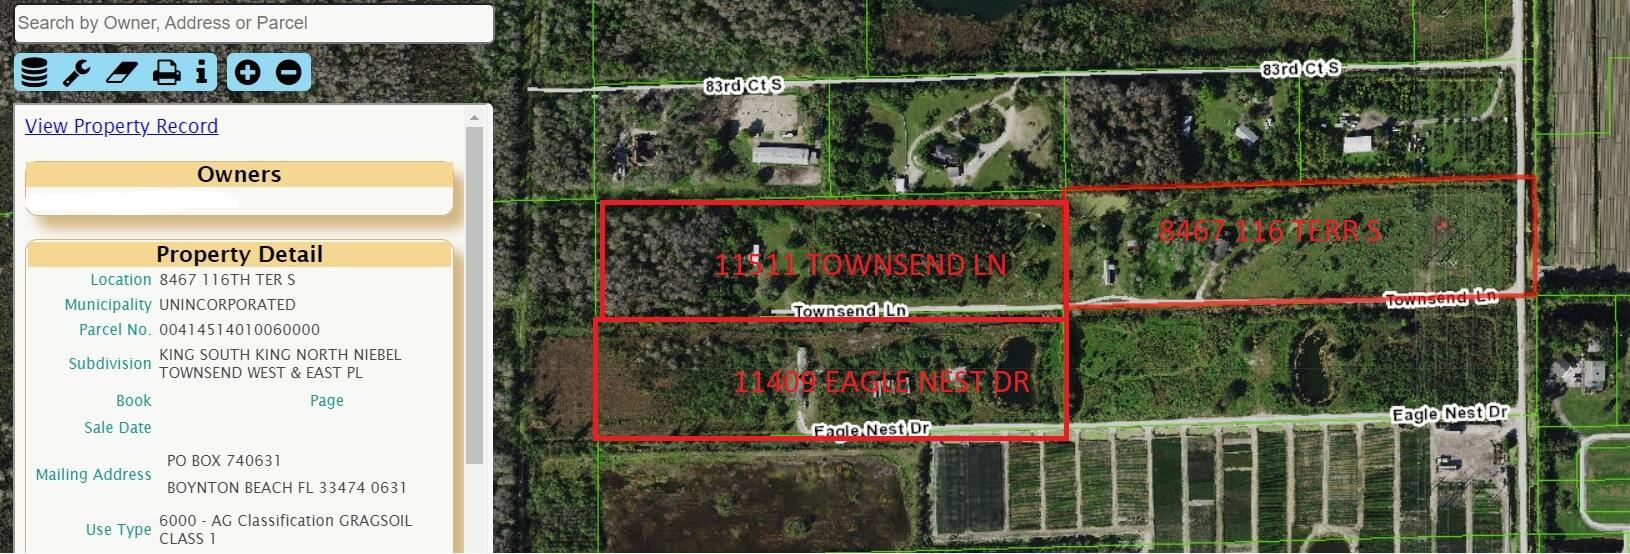 KING SOUTH KING NORTH NIEBEL TOWNSEND WEST & EAST PL Properties For Sale